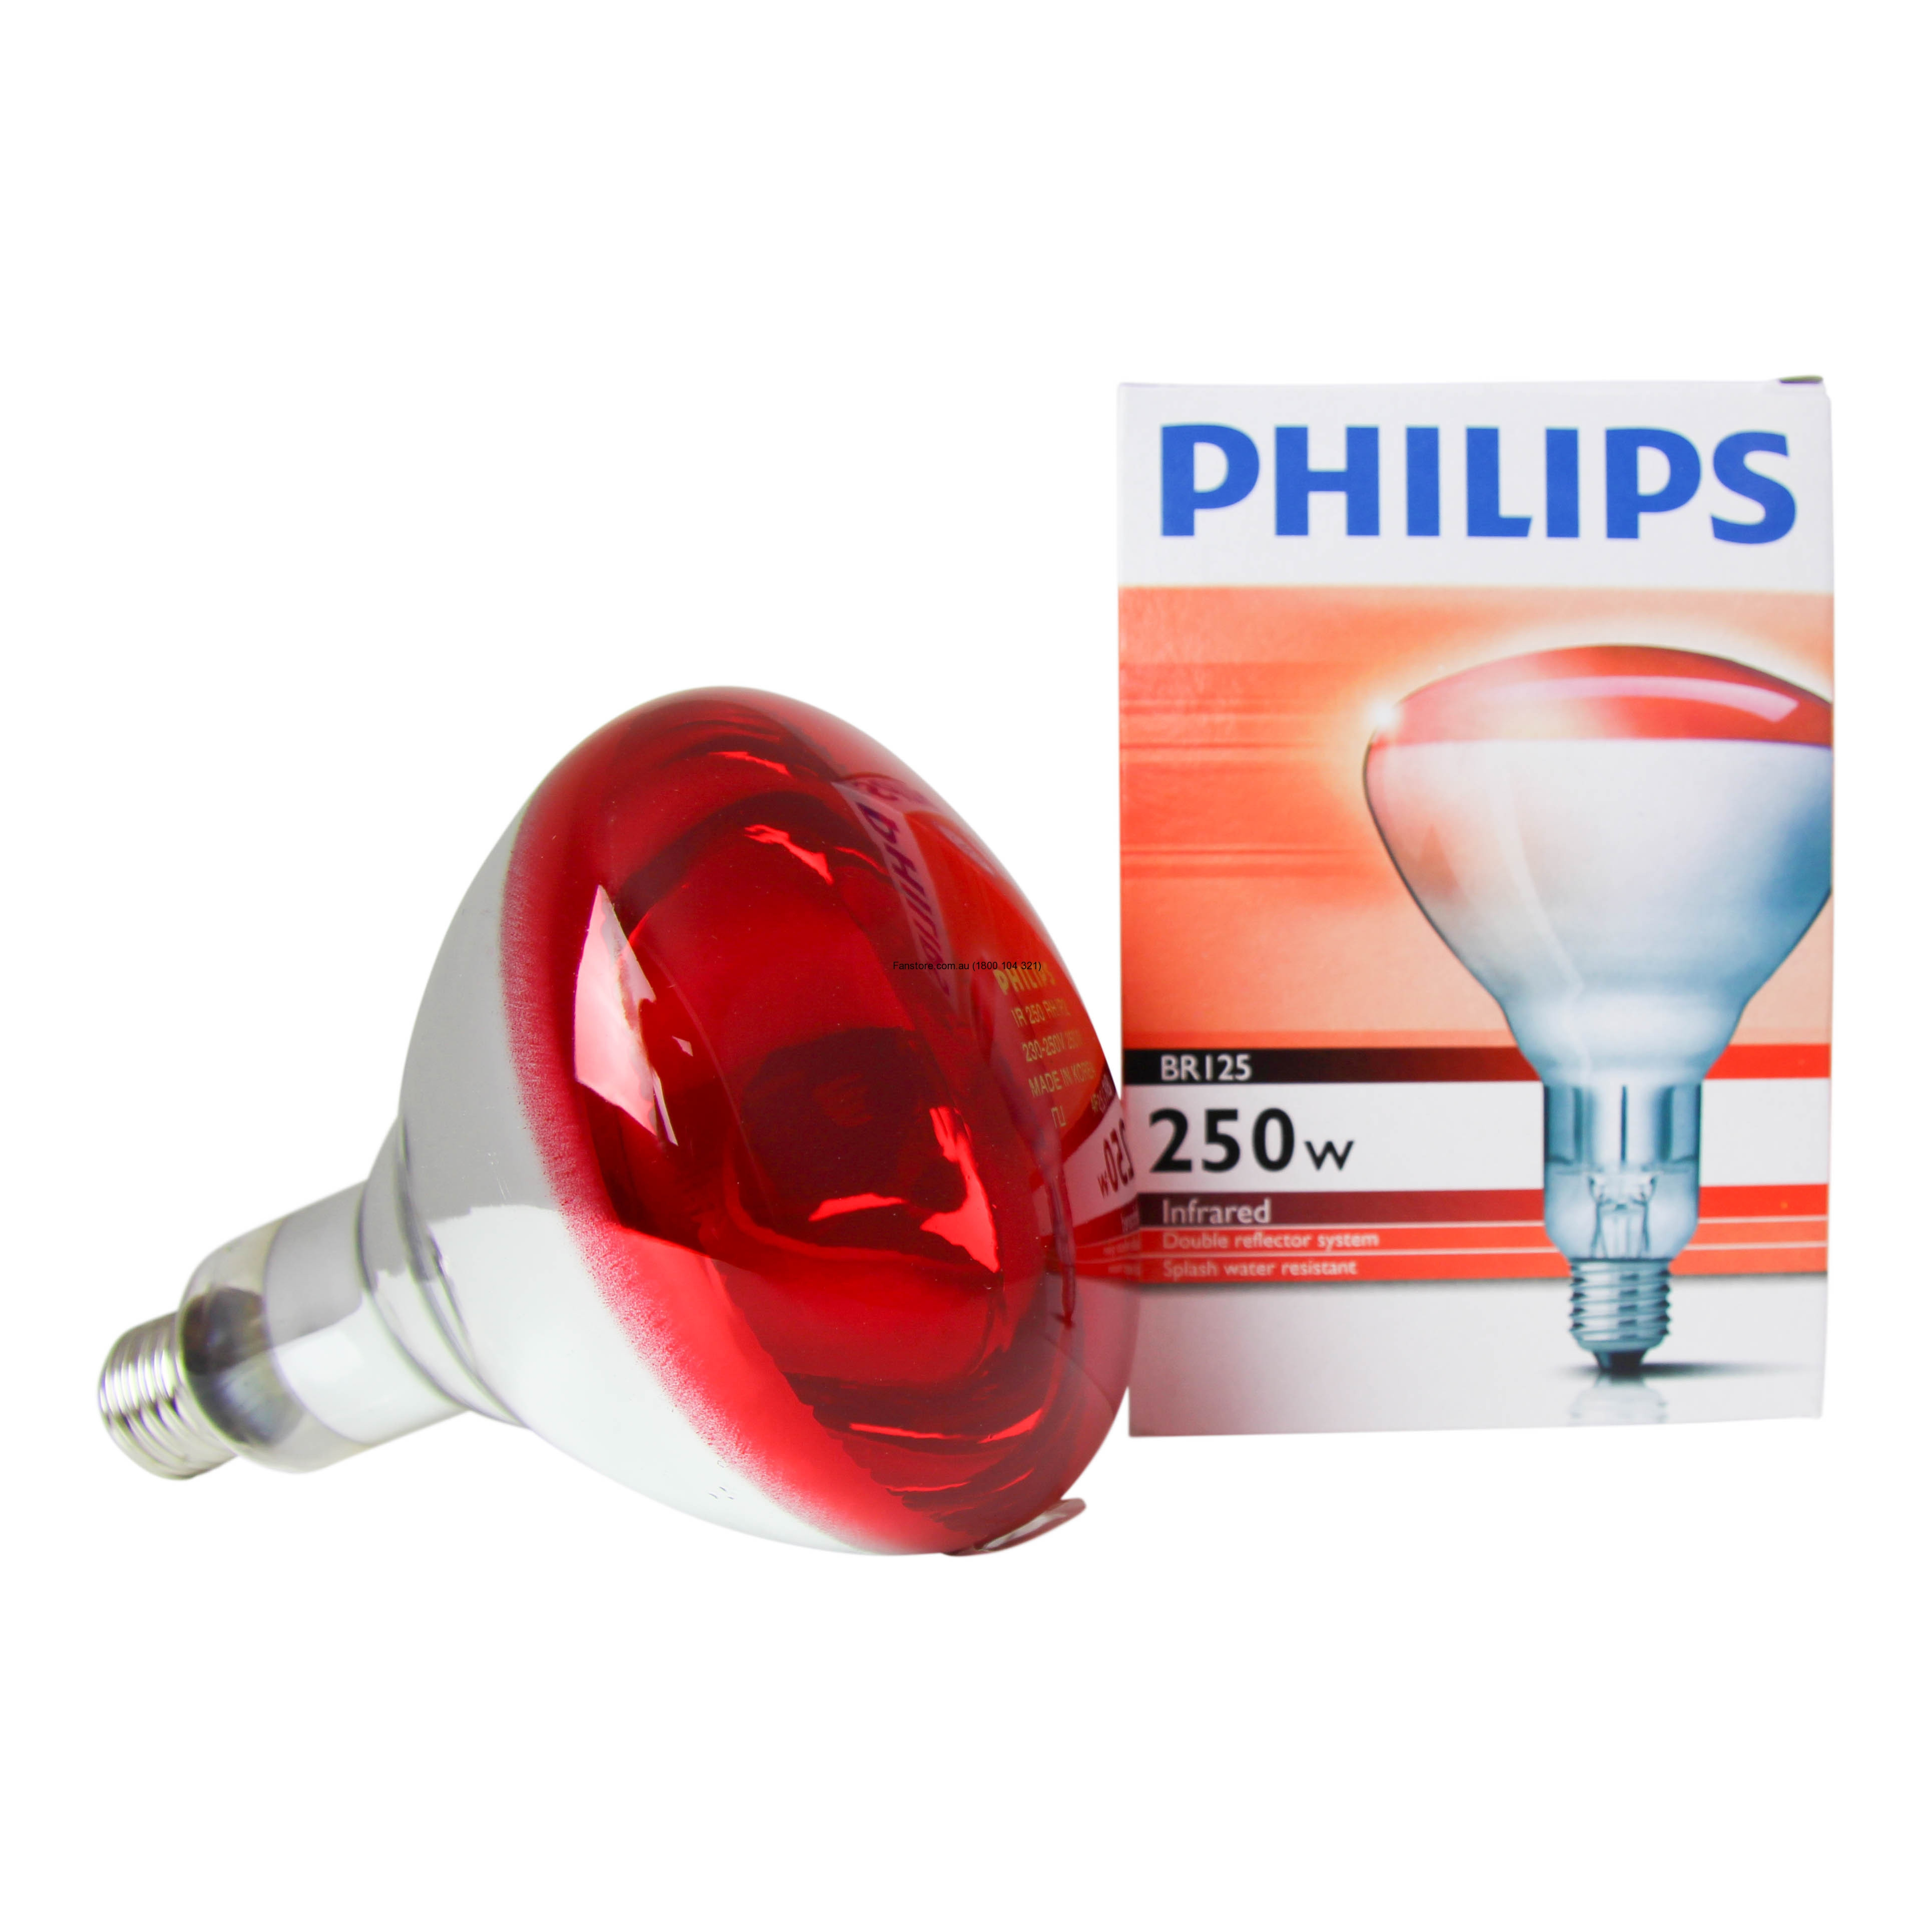 Philips BR125 IR 250W E27 230-250V Red for Philips Infrared Heat Lamp  103wja